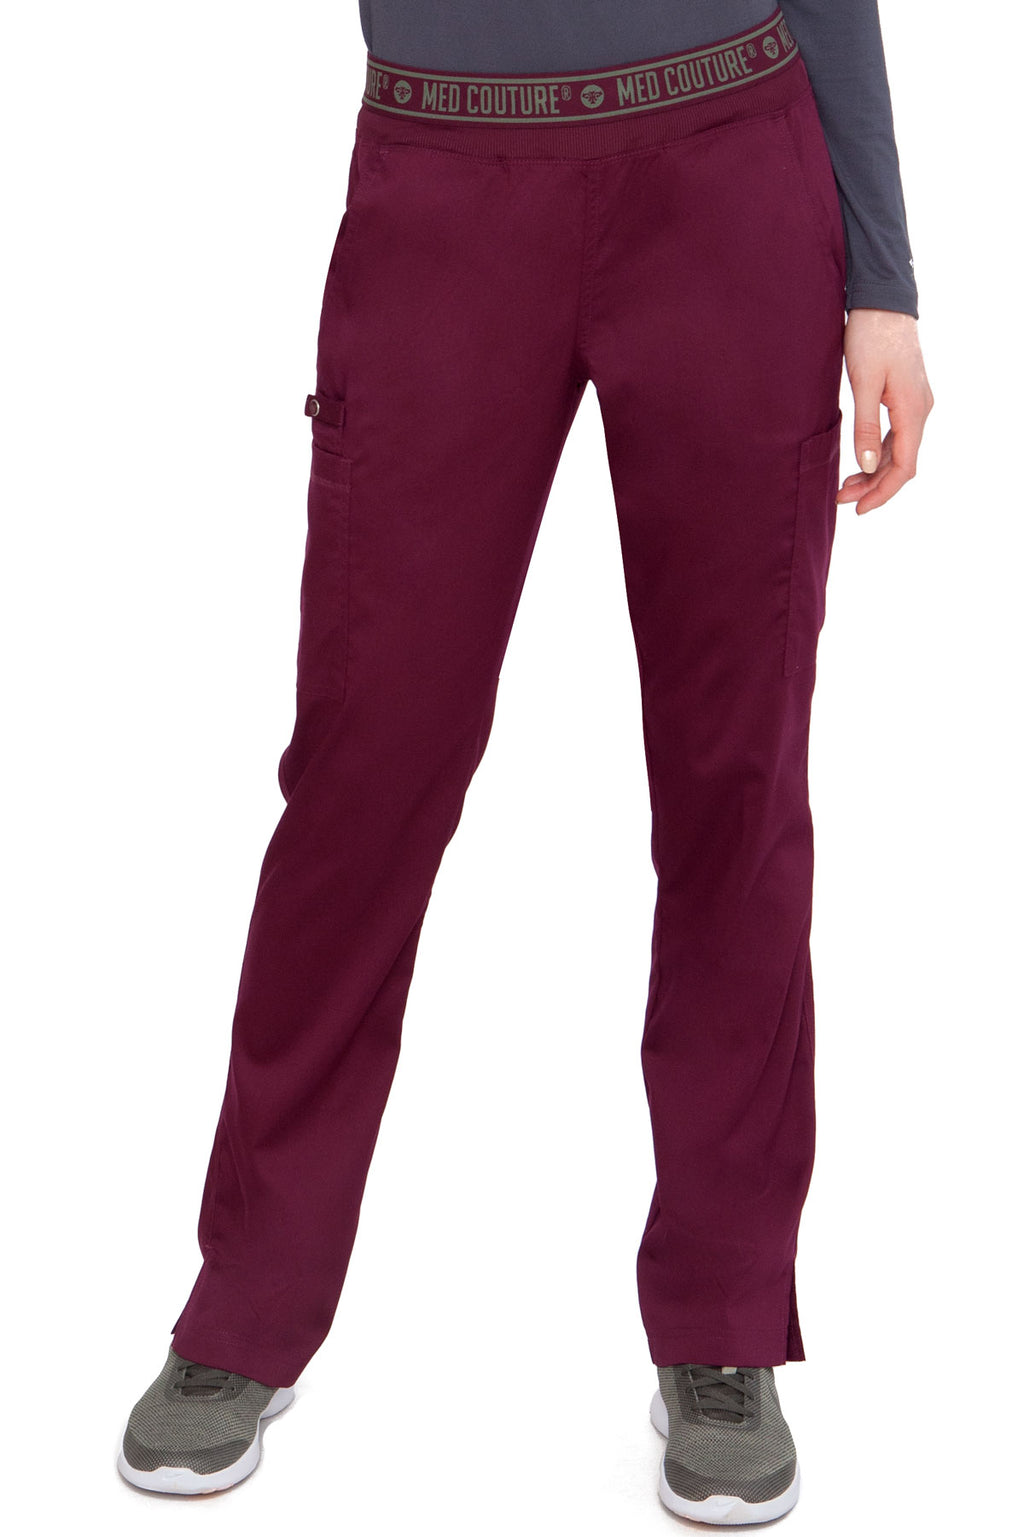 Med Couture Touch 7739 Yoga 2 Cargo Pocket Pant